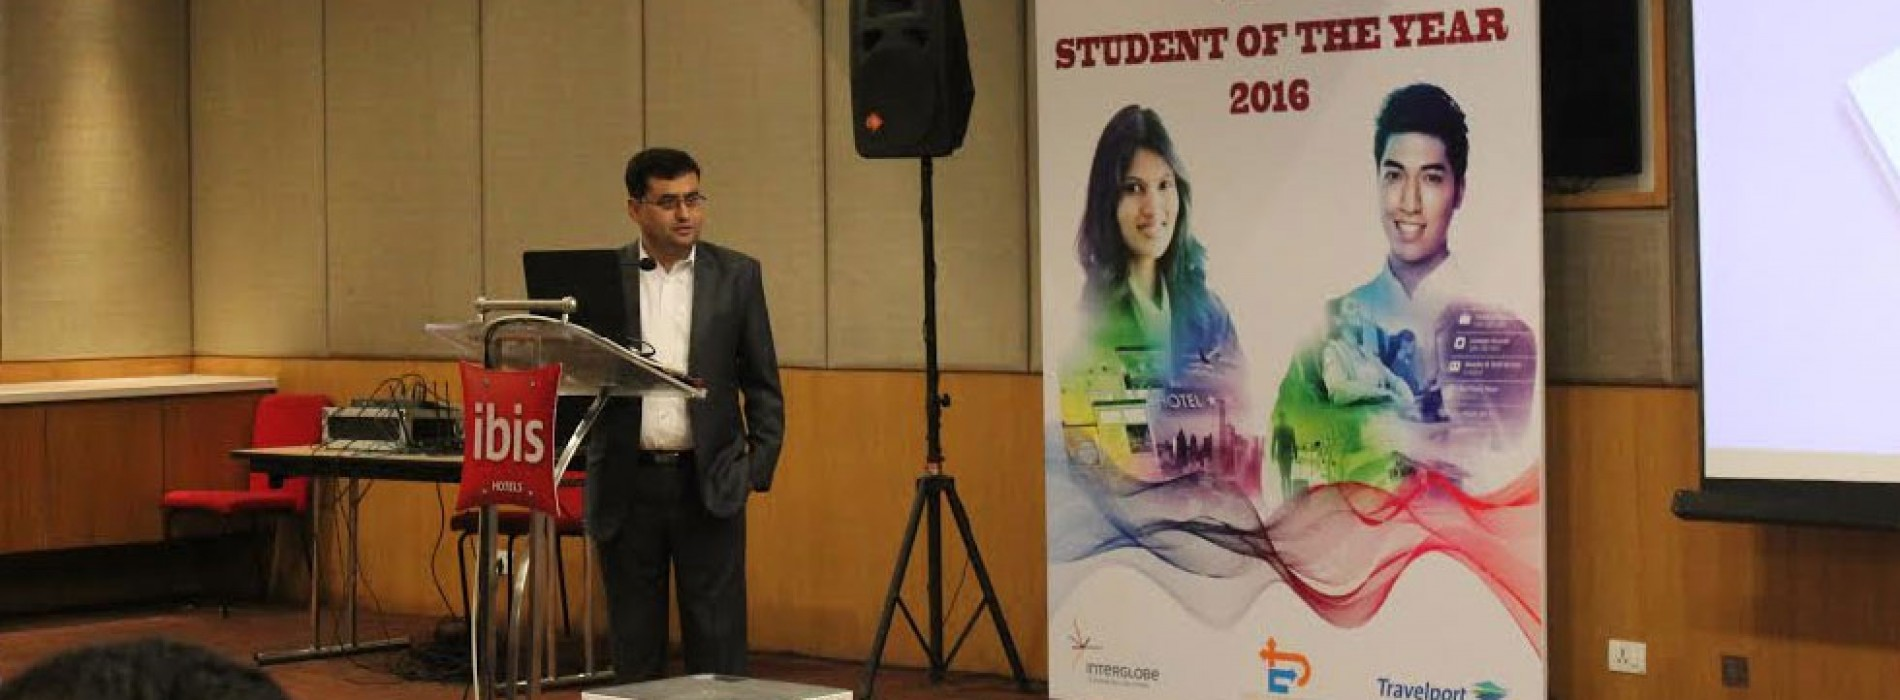 InterGlobe Technology Quotient organizes 'Student of the Year 2016′ Contest